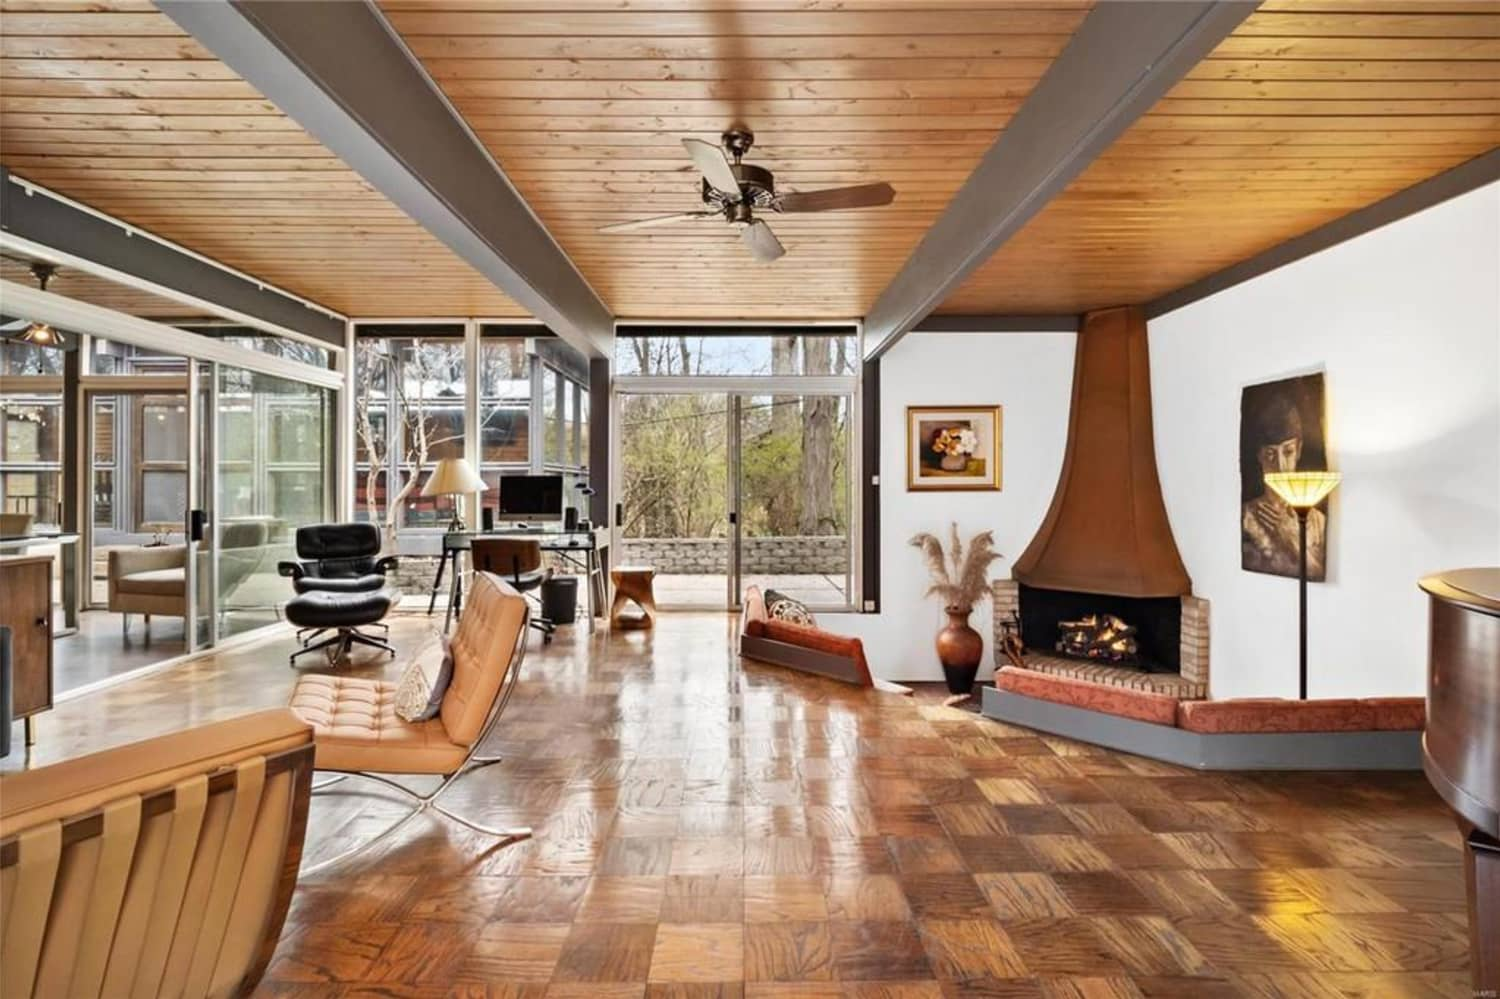 8 Mid-Century Modern Houses for Sale for Under $300,000